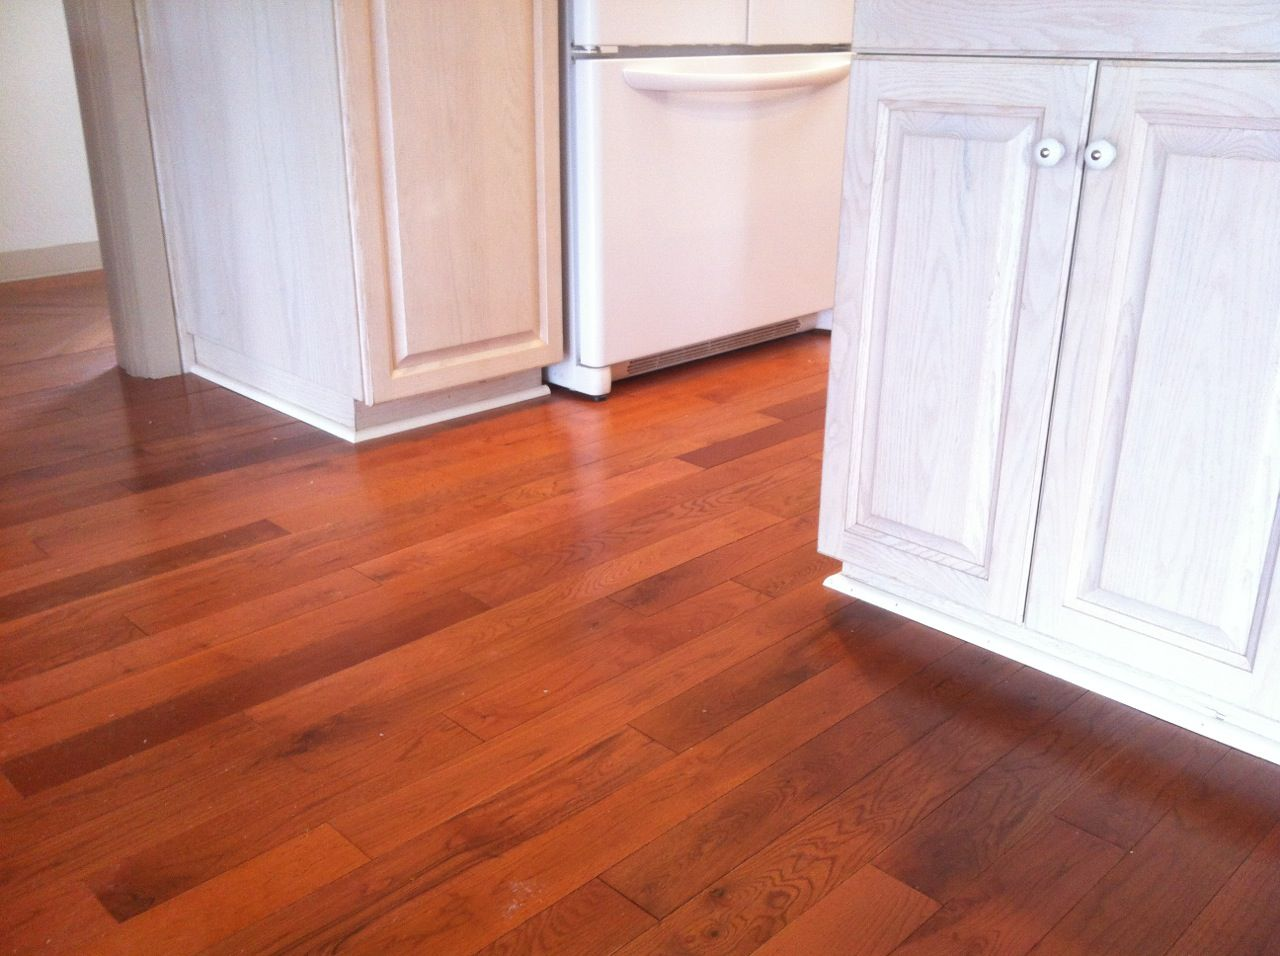 Hardwoods And Quarter Round Kitchen Cabinets Installing Hardwood Floors Hardwood Floor Installation